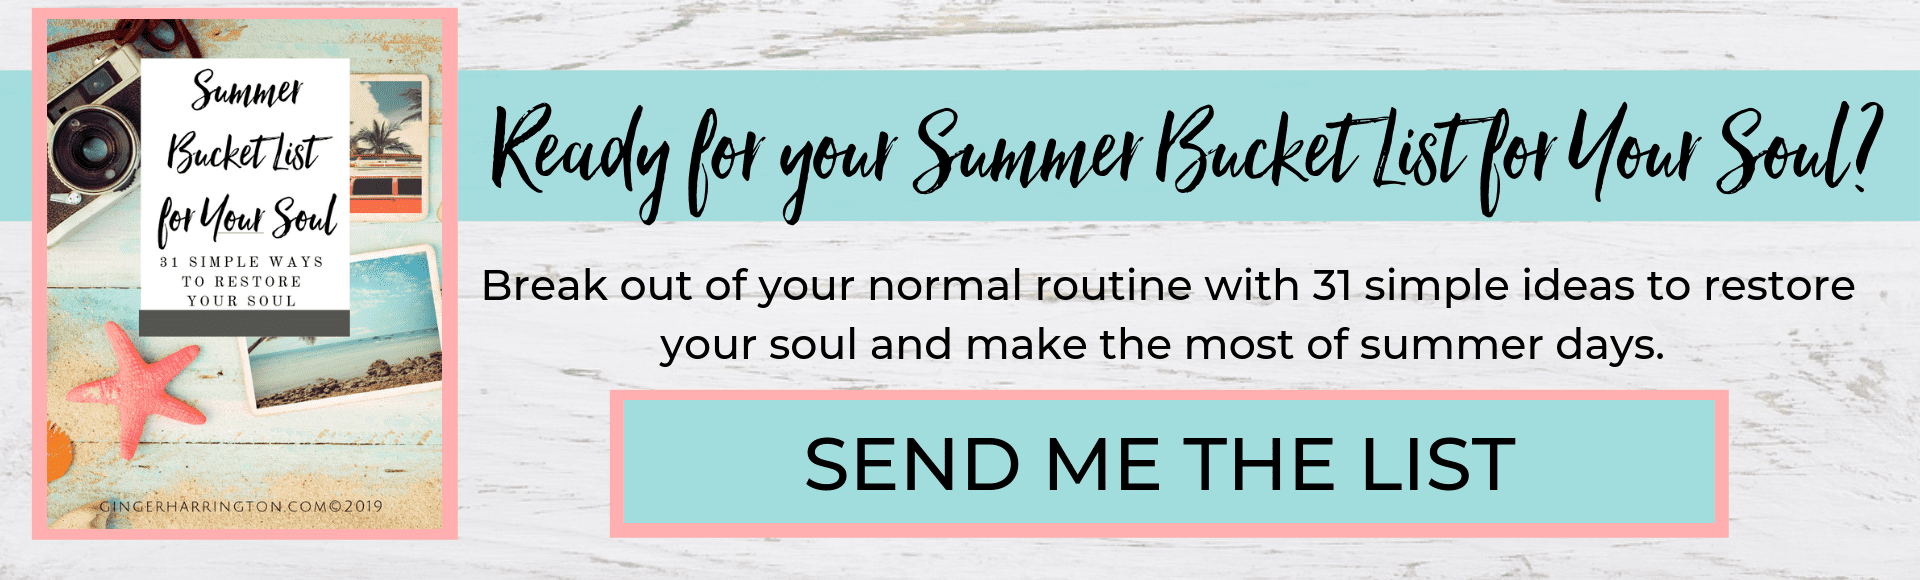 Get a summer bucket list for your soul, with 31 soul-restoring activities to make the most of this summer.